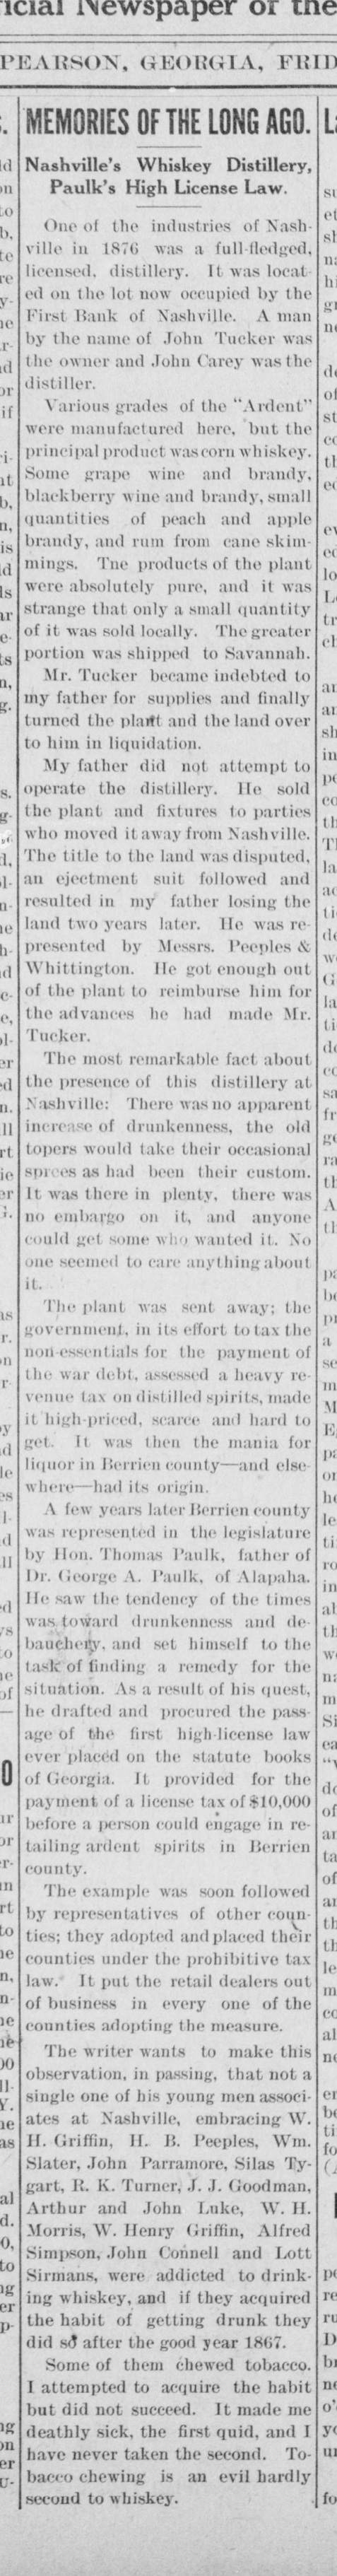 Anonymous memoir on 1876 whiskey distillery at Nashville, GA appeared in the Pearson Tribune, October 24,1919.